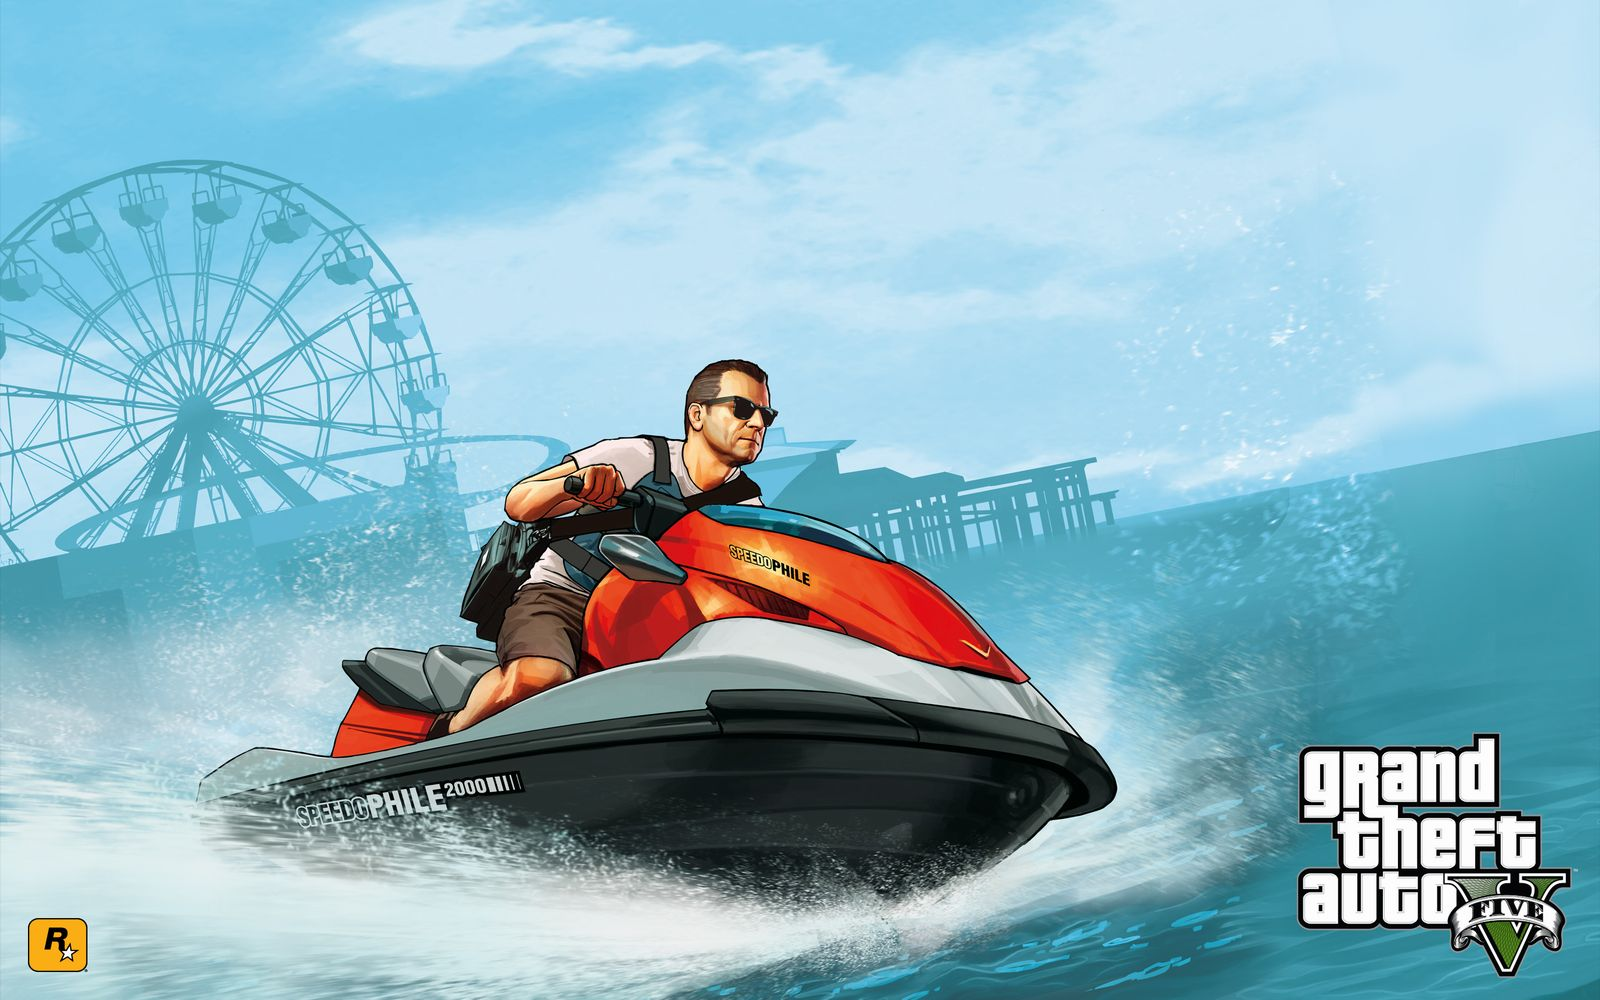 Michael jetski GTA 5 Wallpaper